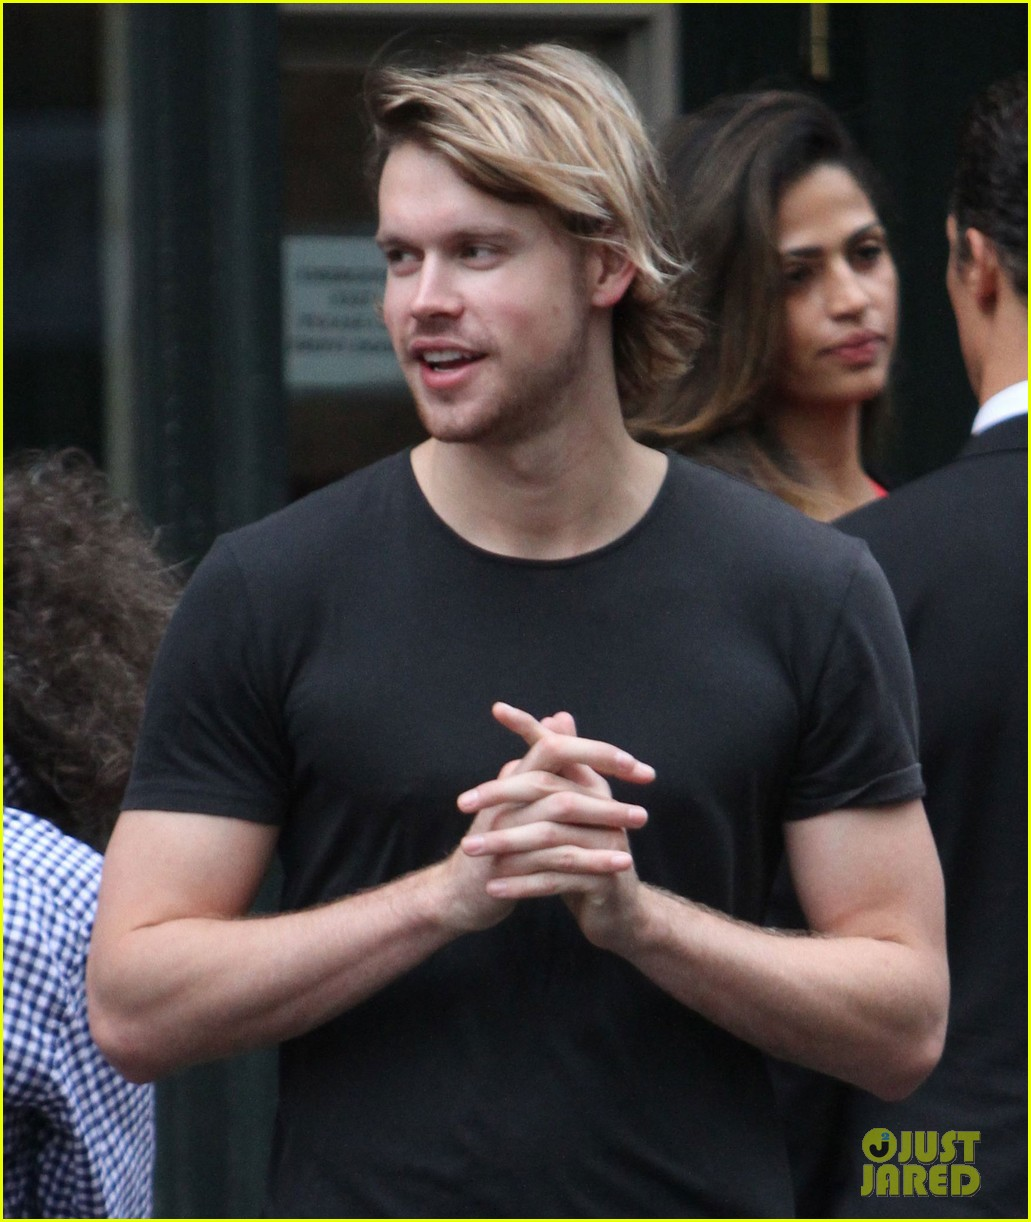 chord overstreet dolce gabbana guy in nyc 032909185